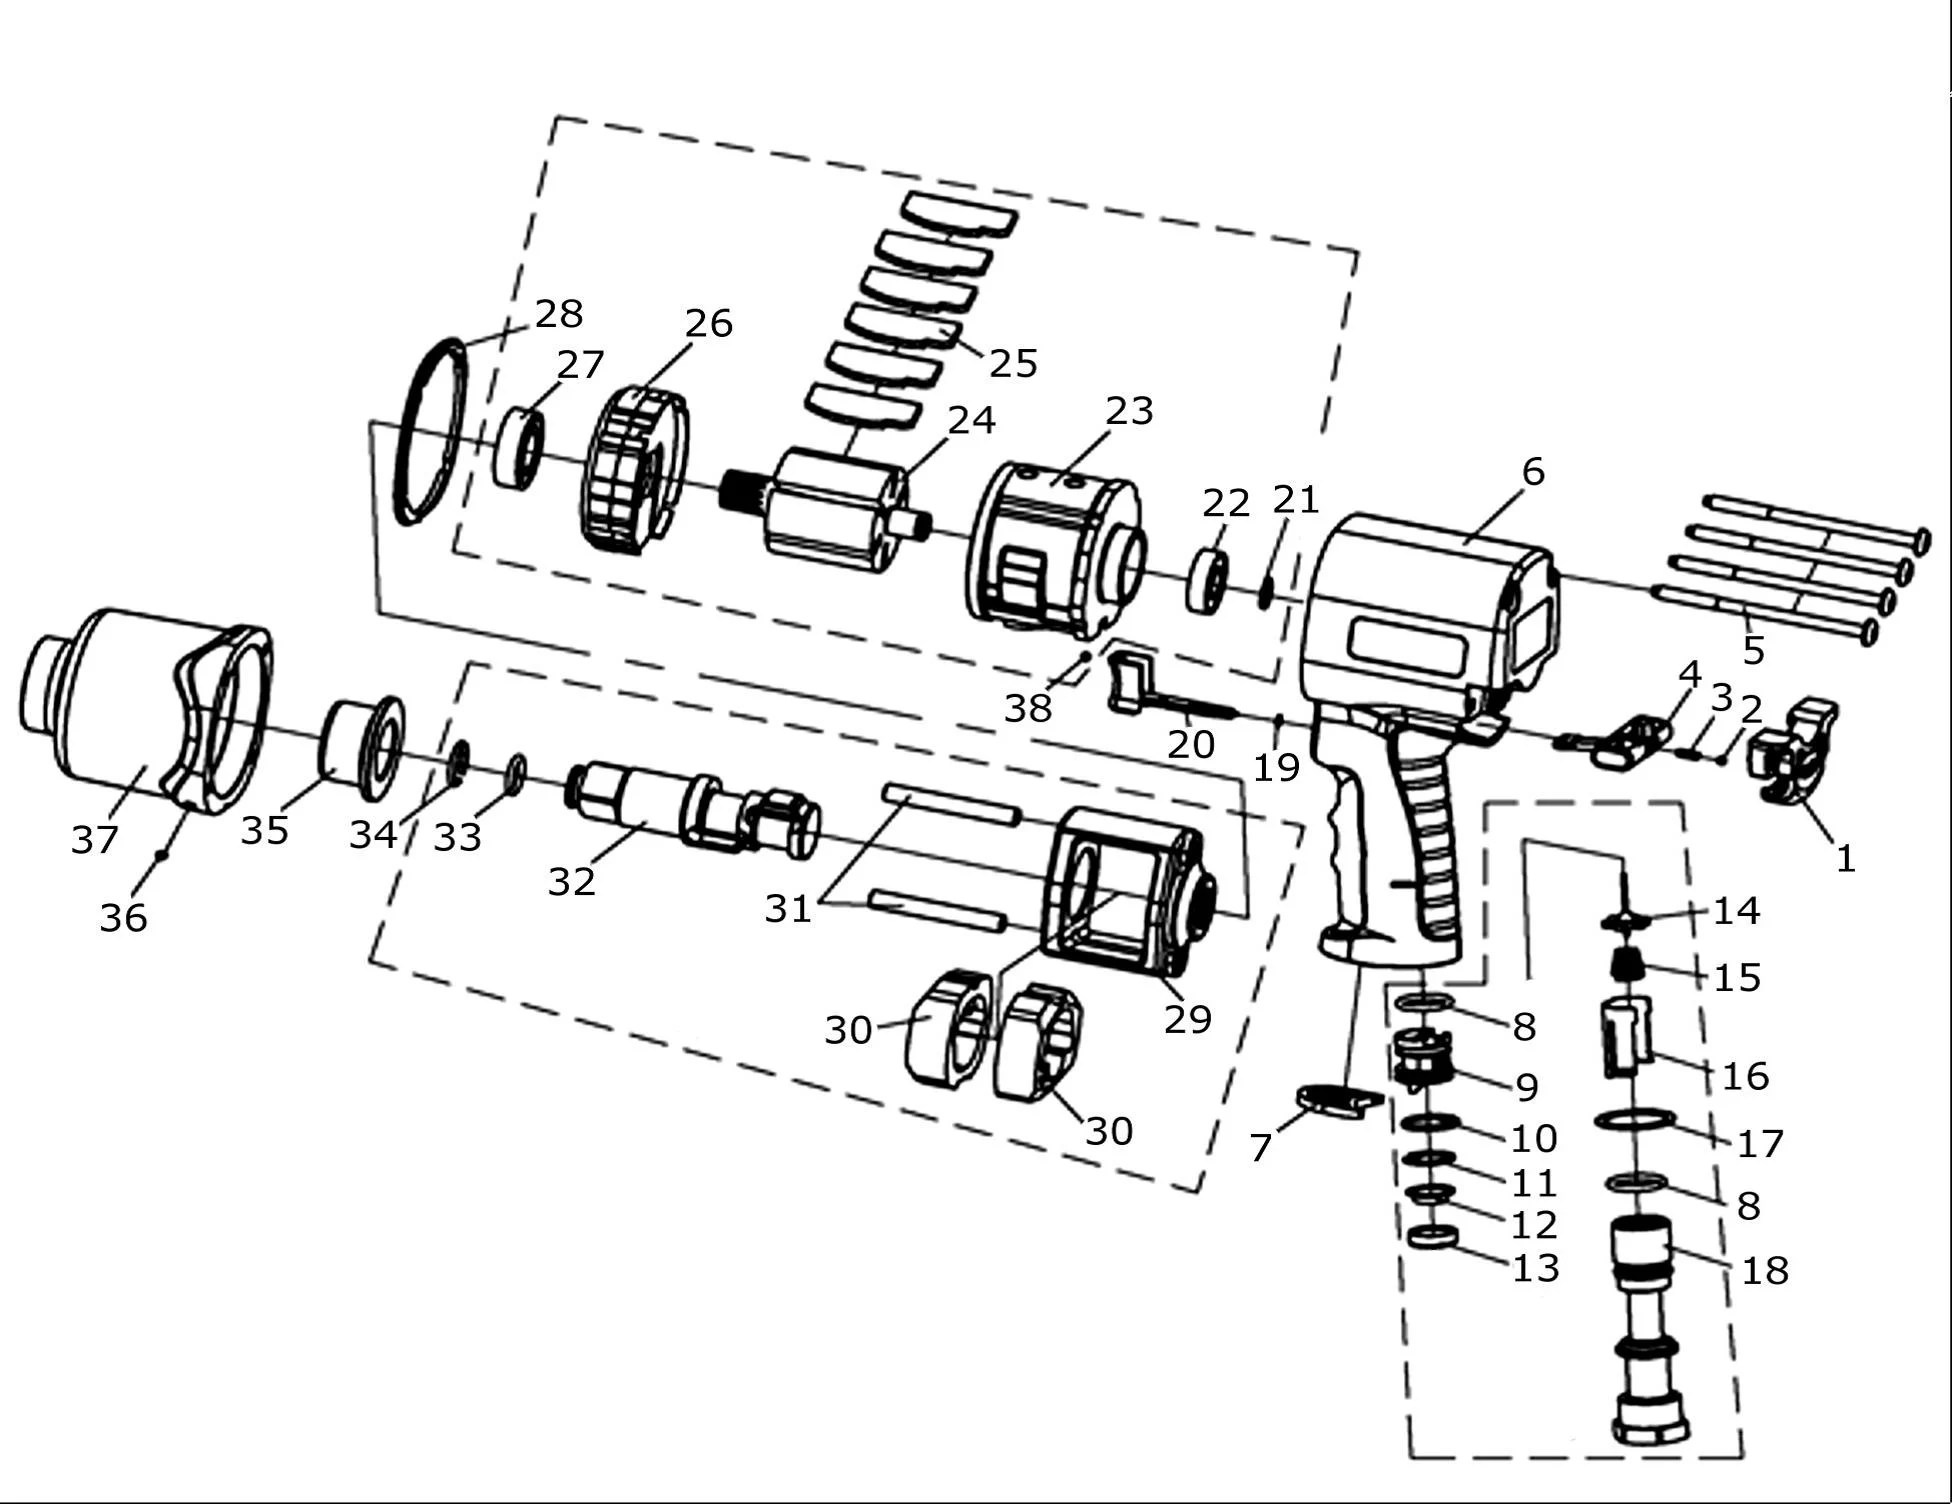 Inside Air Impact Driver Diagram